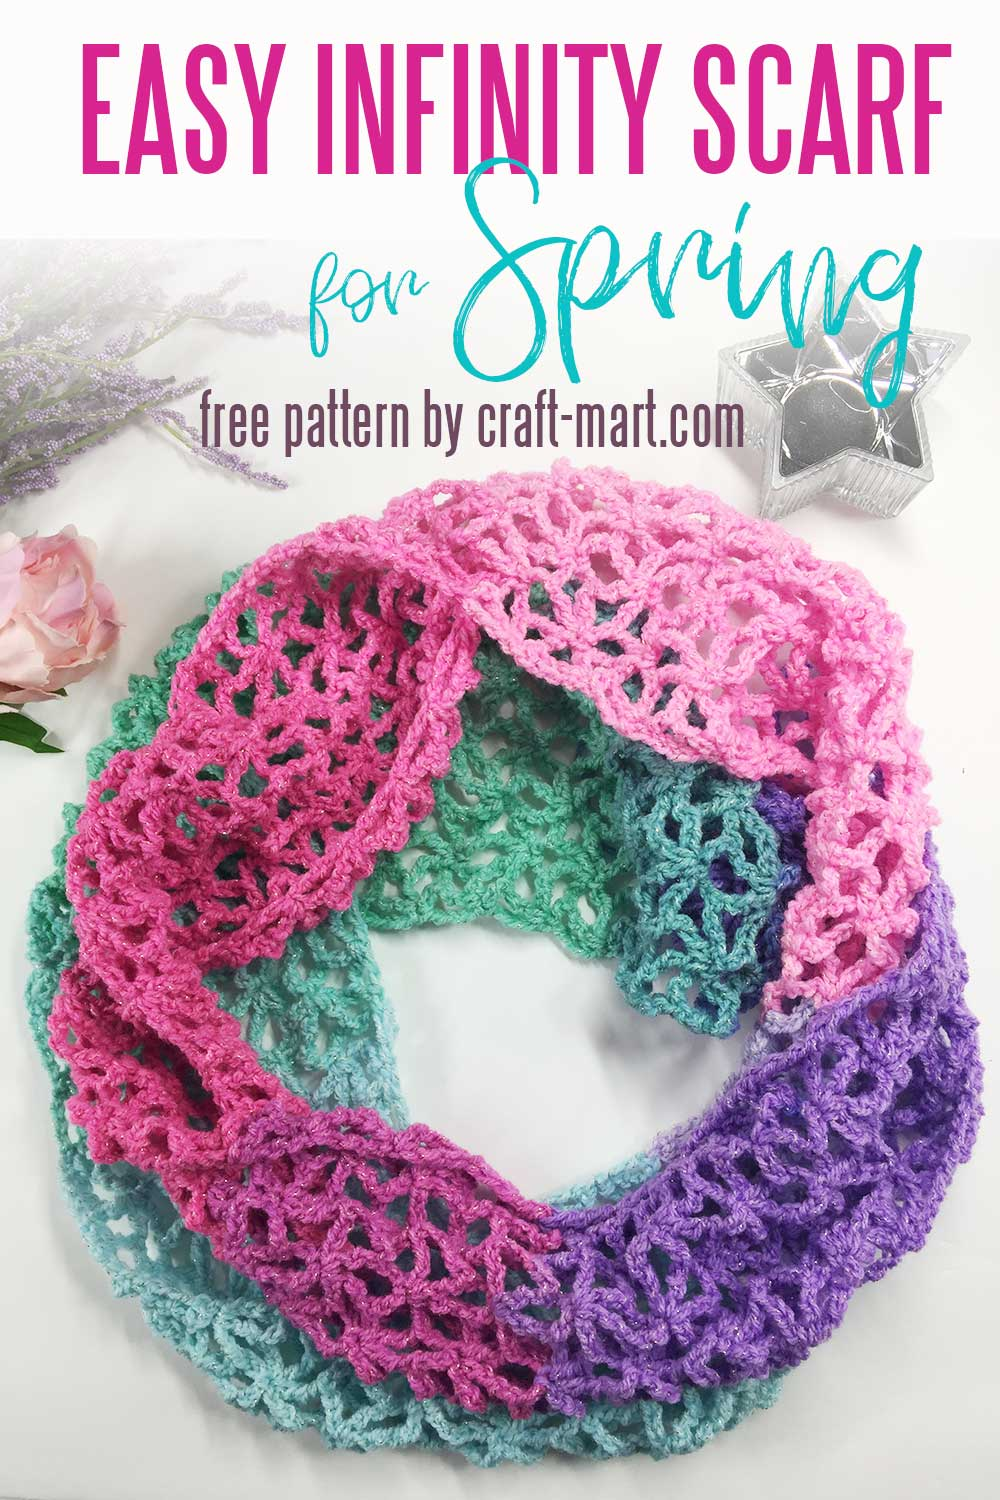 Easy Infinity Scarf for Spring